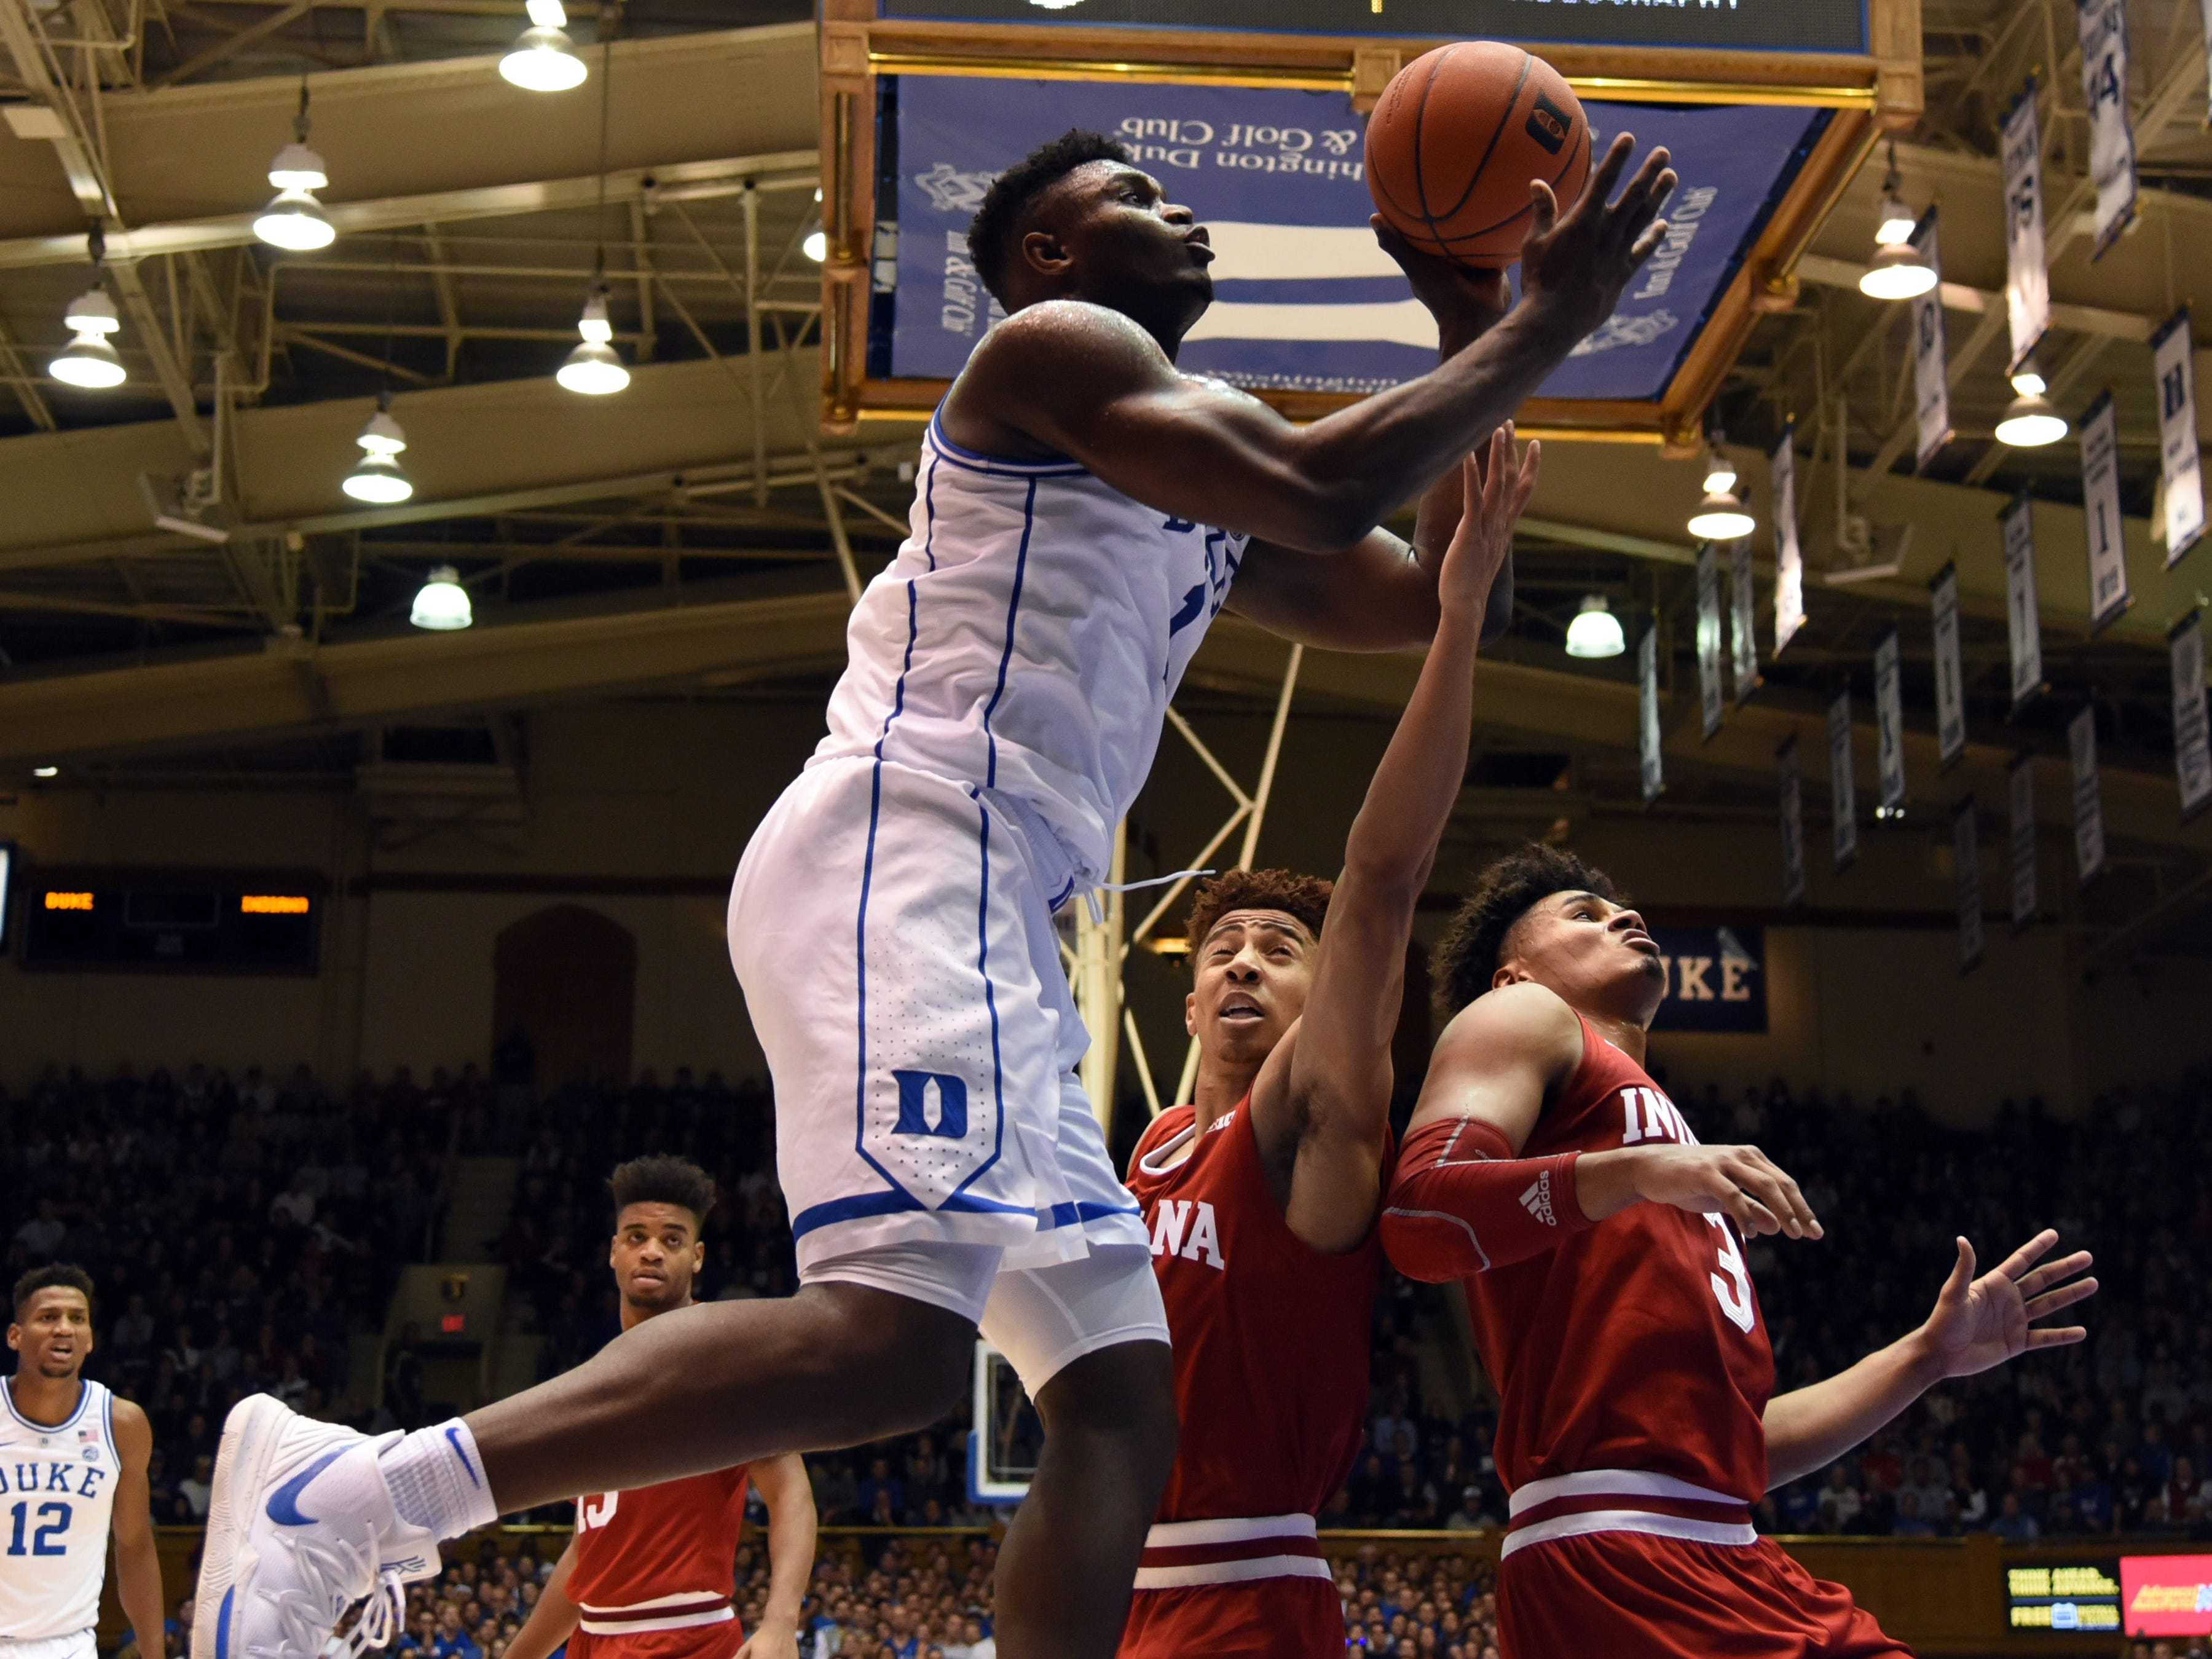 Nov 27, 2018; Durham, NC, USA; Duke Blue Devils forward Zion Williamson (1) shoots over Indiana Hoosiers guard Rob Phinisee (10) during the first half at Cameron Indoor Stadium.